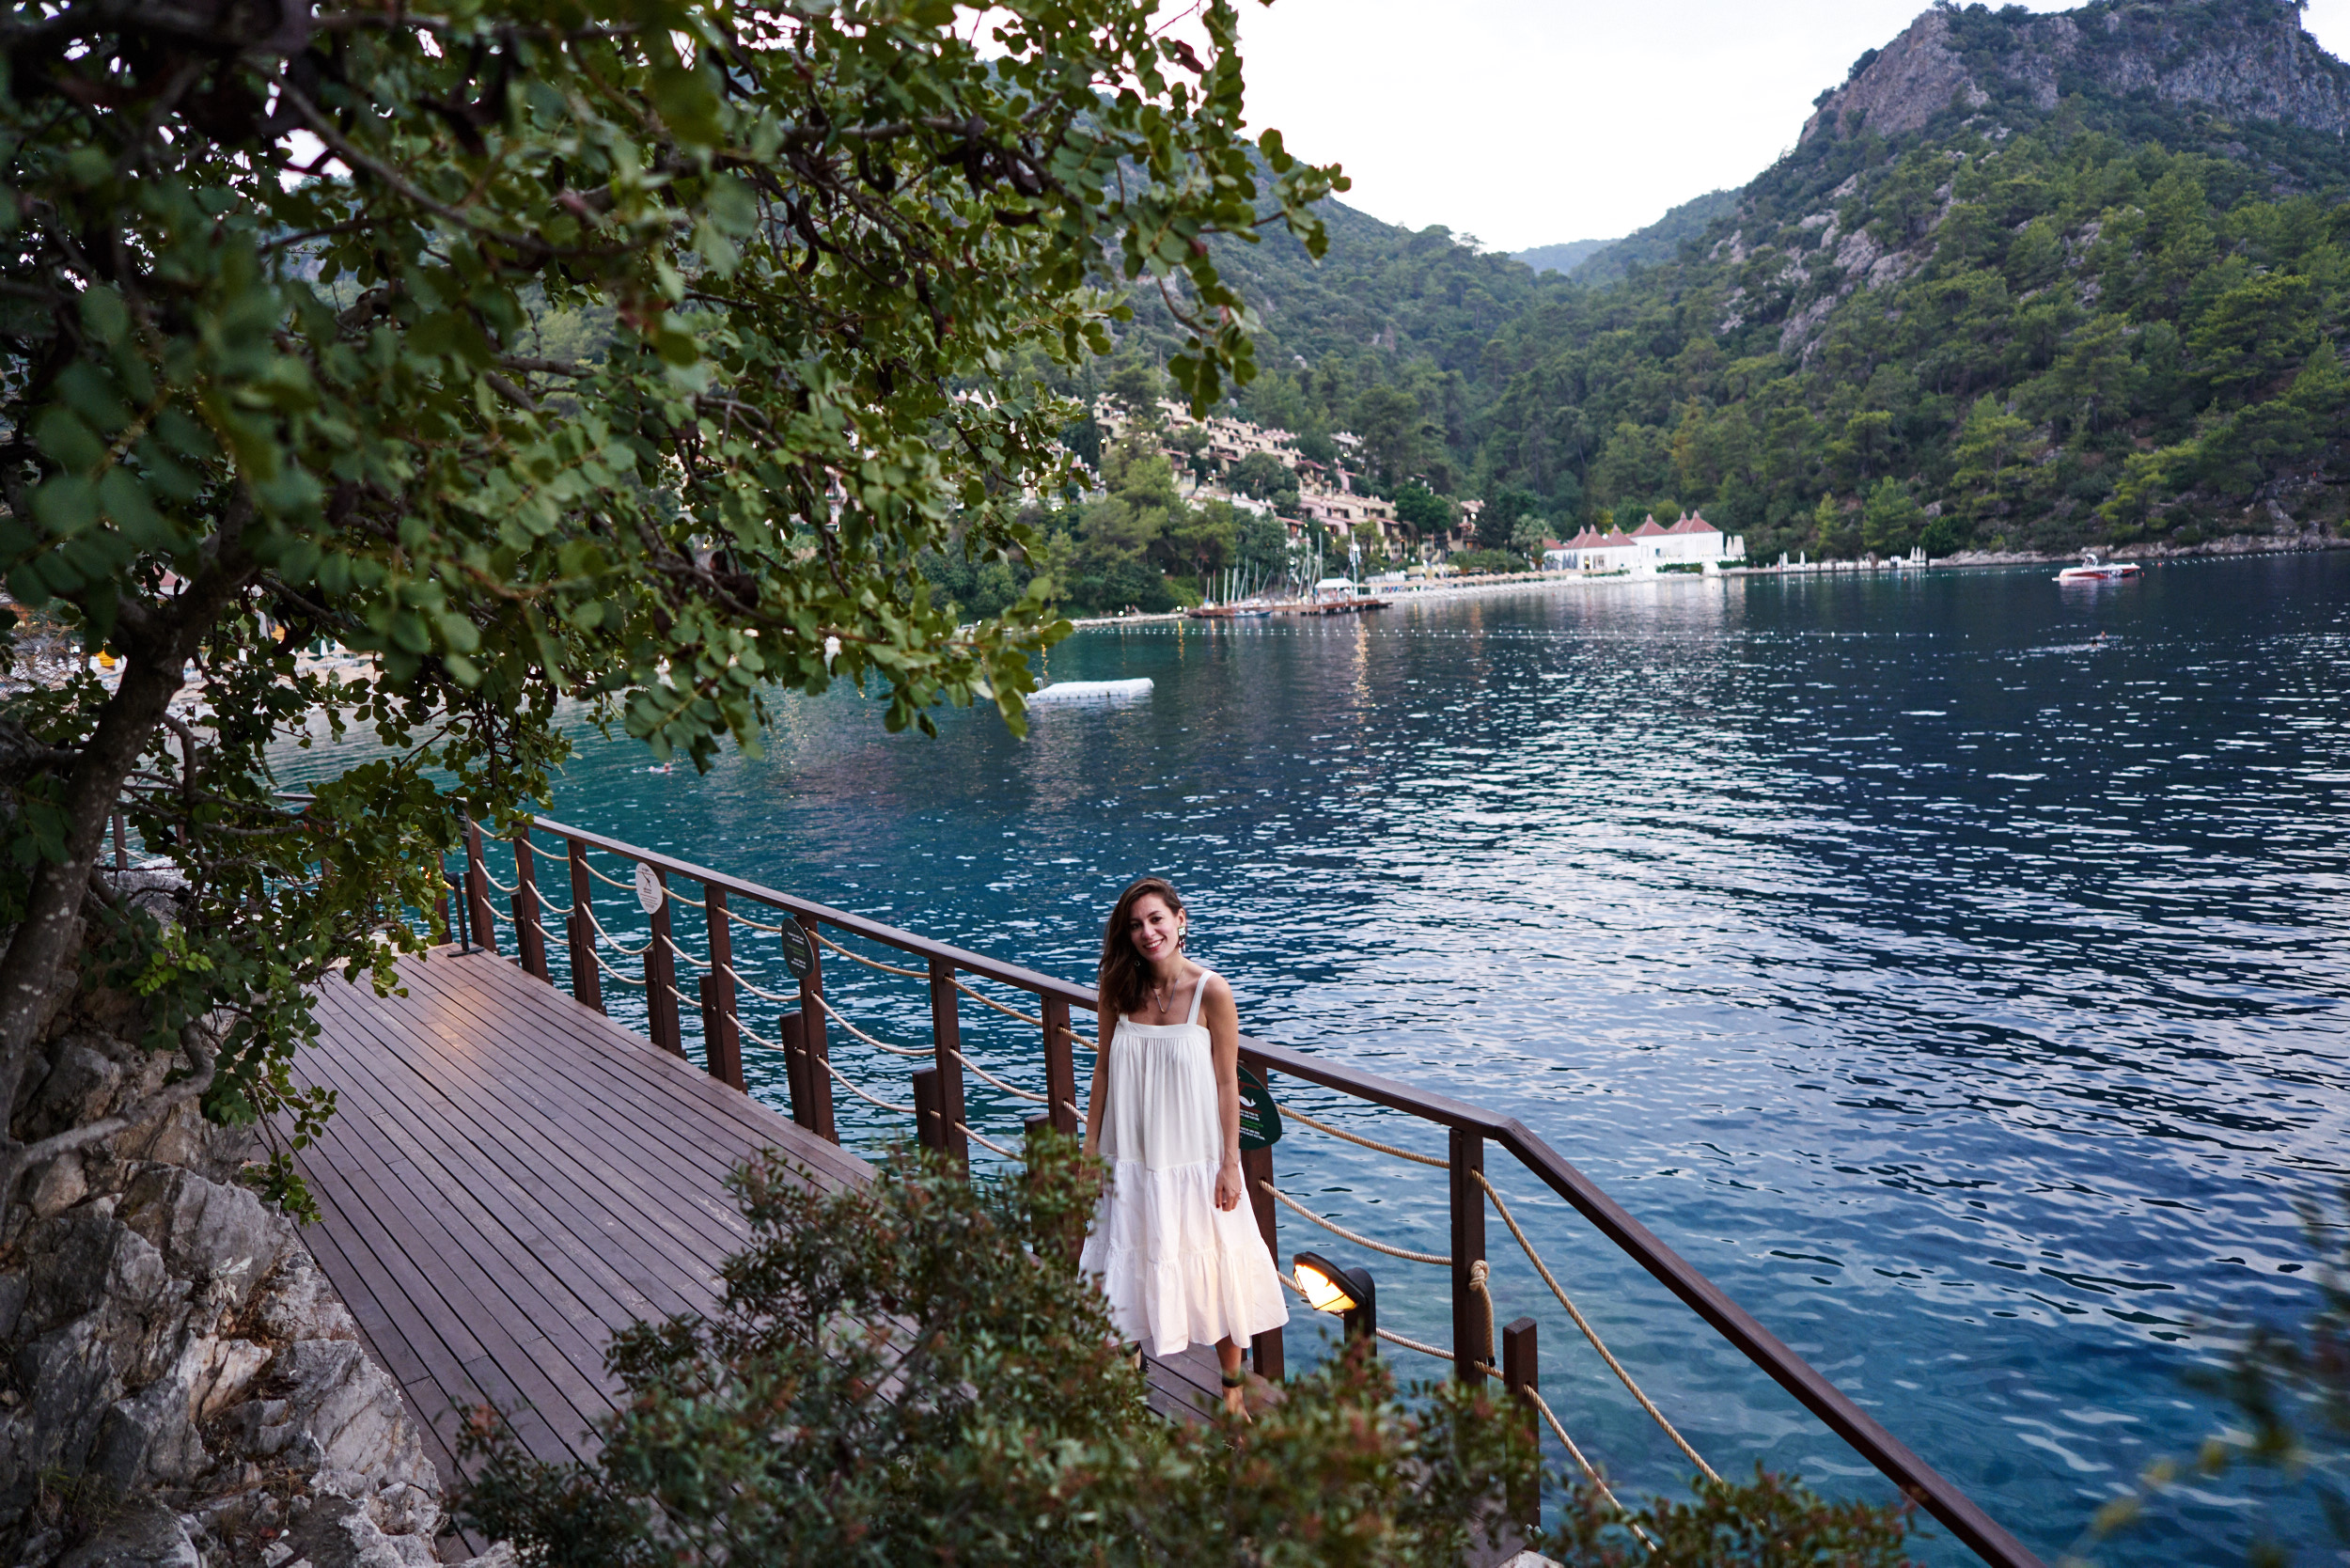 billur saatci, offnegiysem, street style, turkish style blogger, hillside beach club, sunset, heaven on earth,